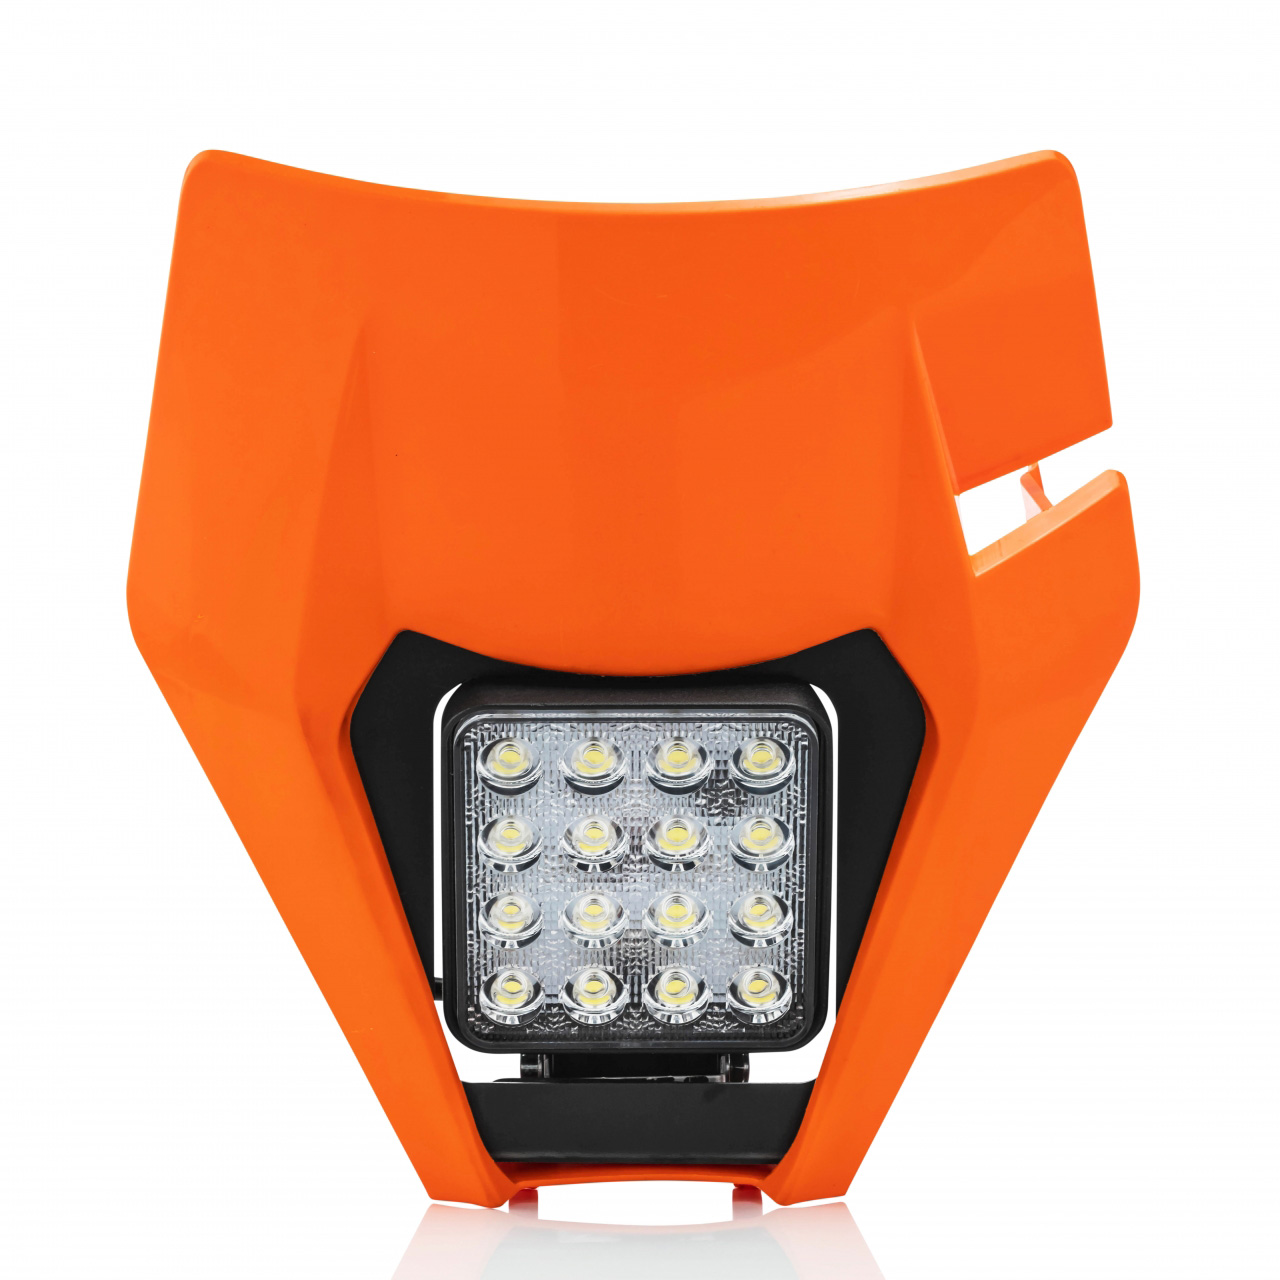 0023949.011.016 Acerbis VSL Headlight Mask Orange KTM EXC250 EXC300 EXC-F250 EXC-F350 EXC-F450 Koplamp Plaque Phare Complète Lampenmaske